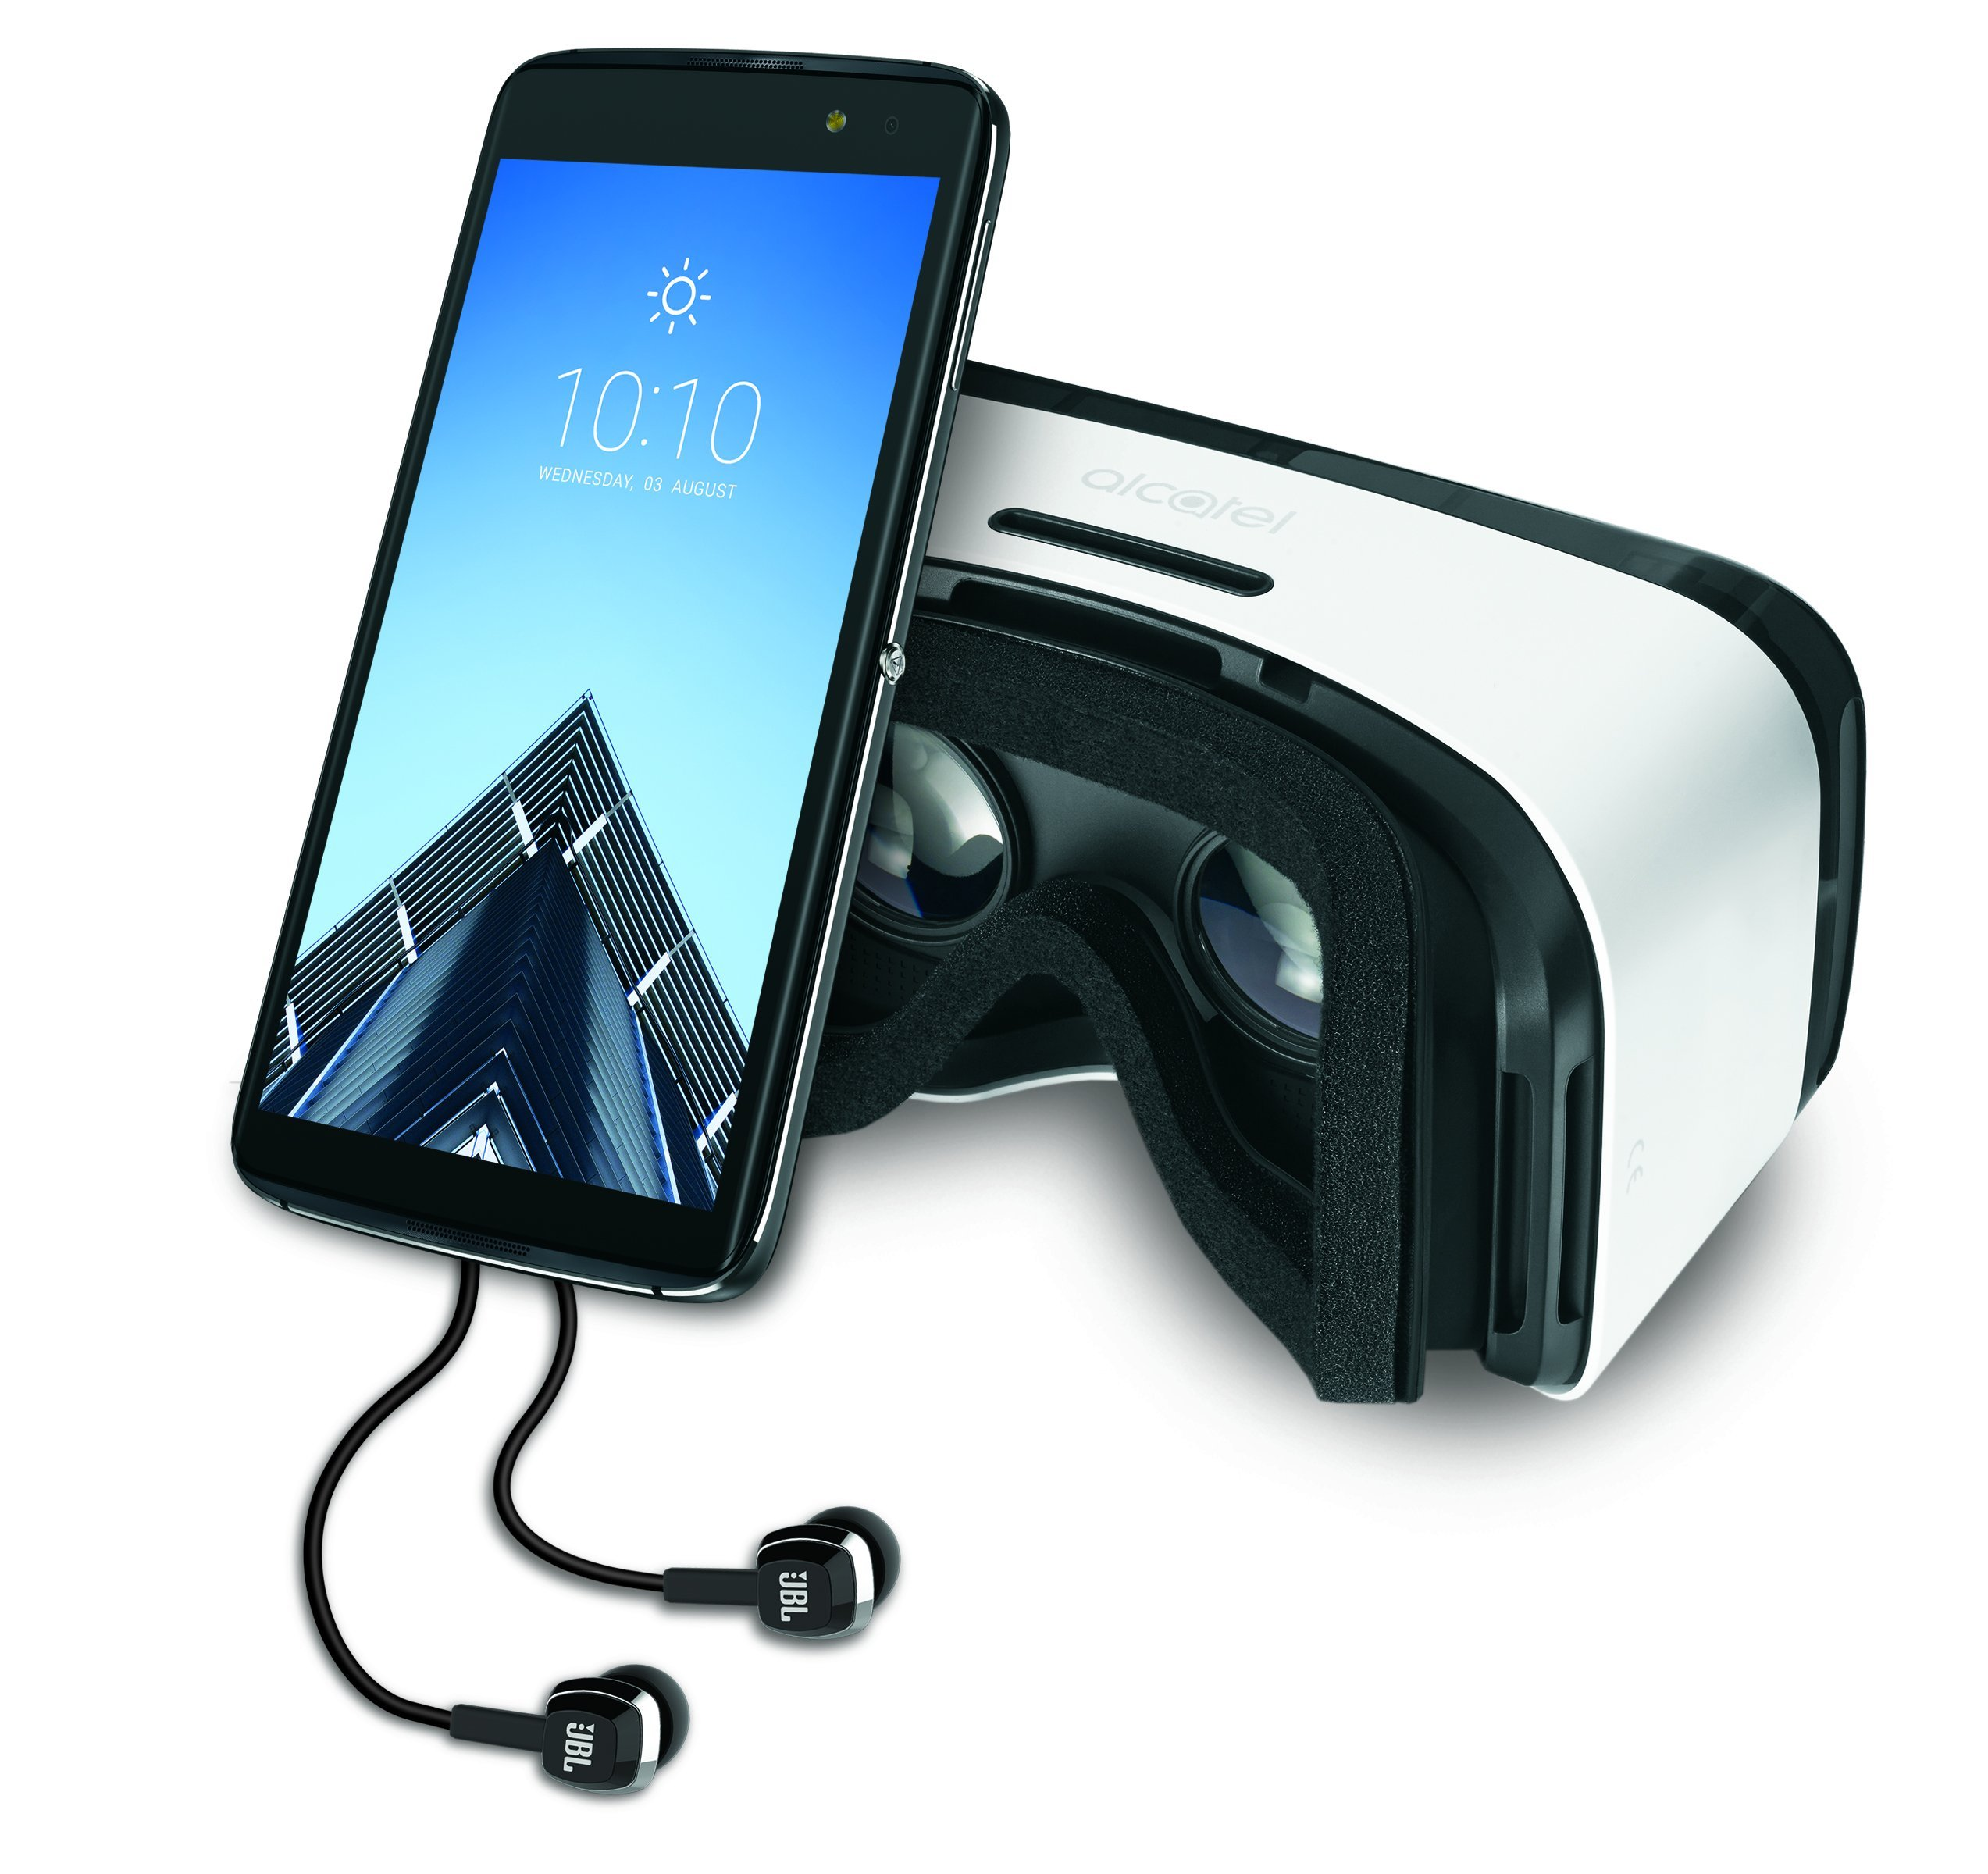 Alcatel IDOL 4S Unlocked 4G LTE Android Smartphone with VR